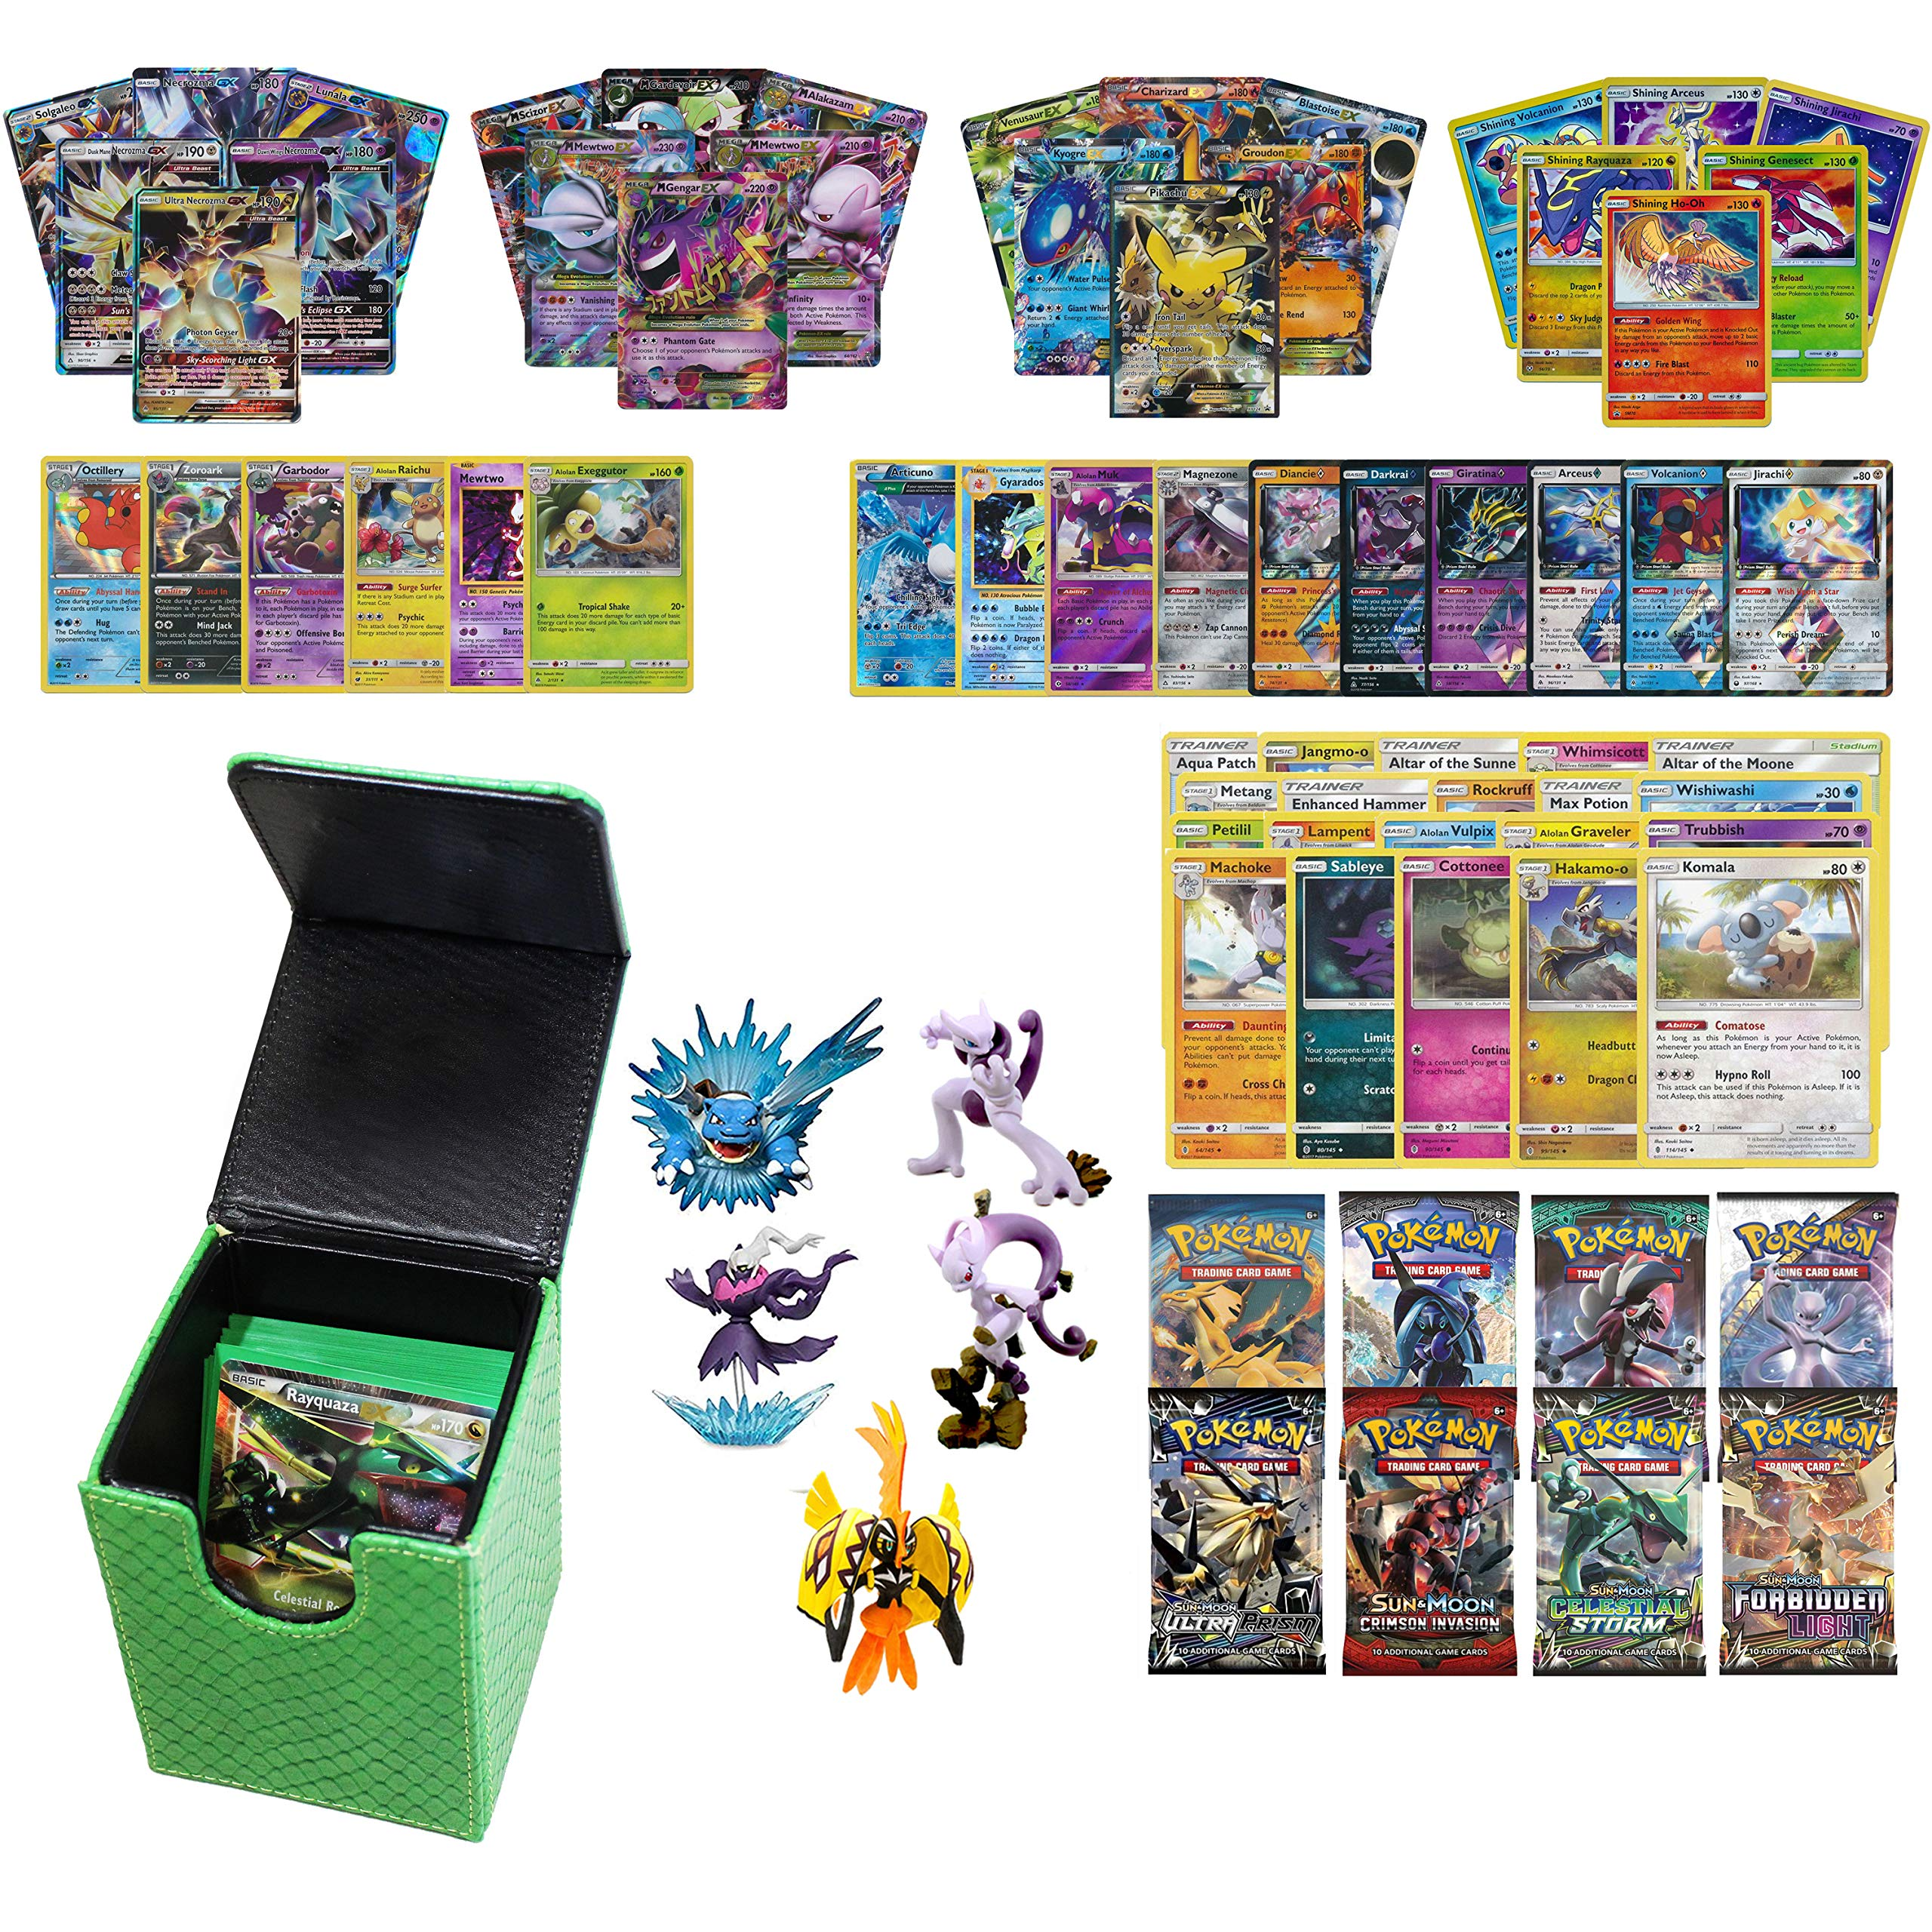 Playoly Pokemon Premium Collection 100 Cards with GX Mega EX Shining Holo 10 Rares 4 Booster Pack -Green Dragonhide Deck Box and Figure